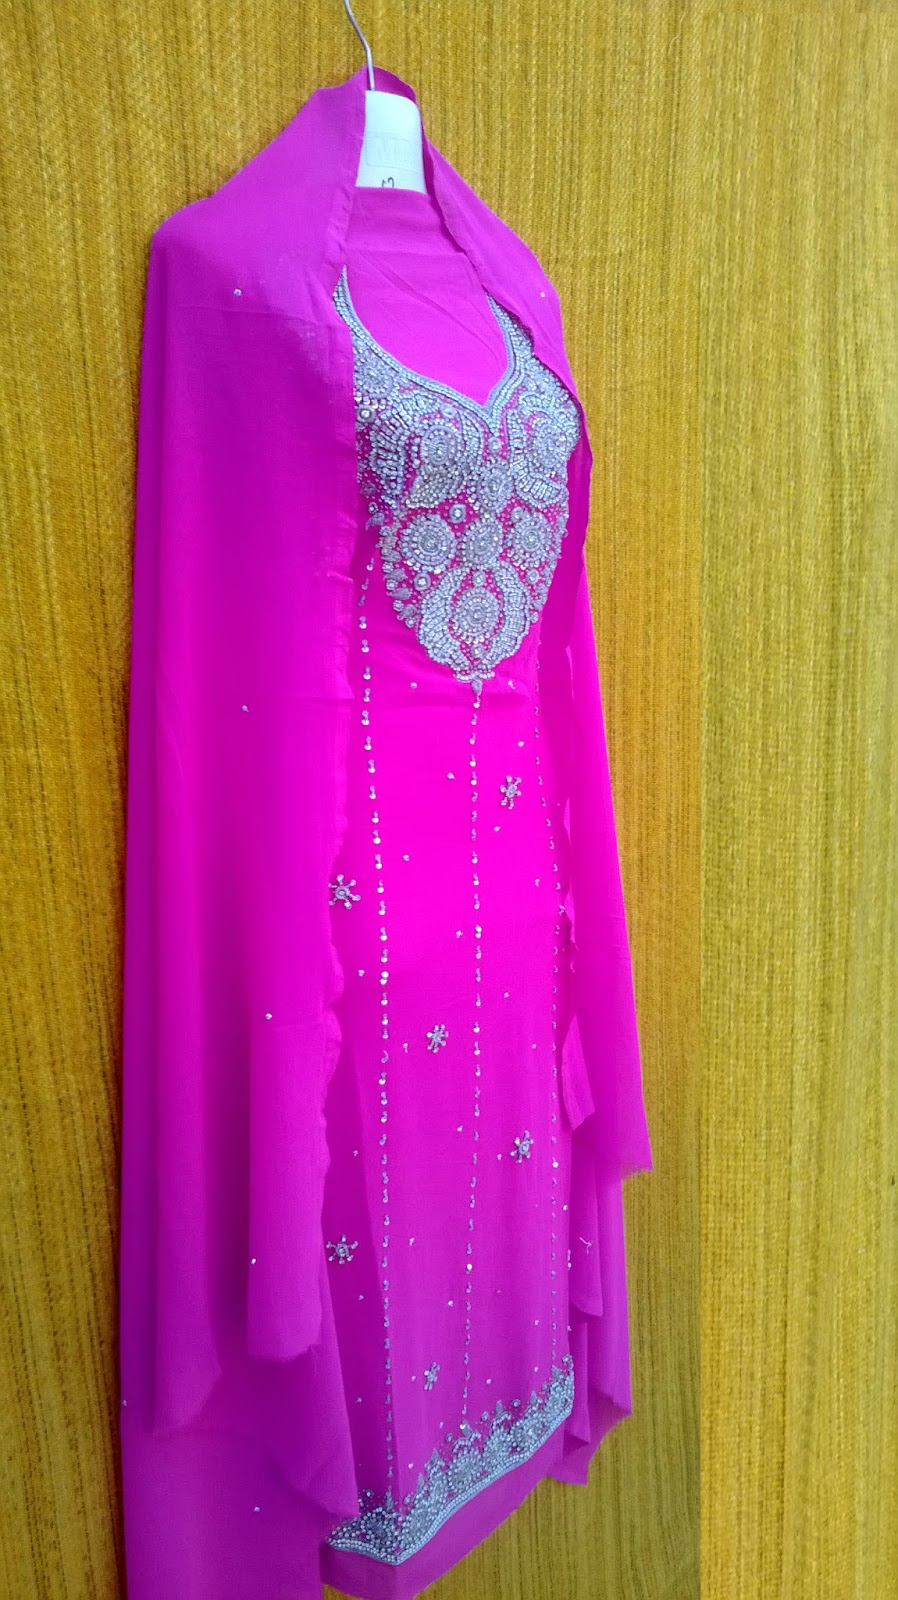 M jamal boutique shop embroidery work by fsu